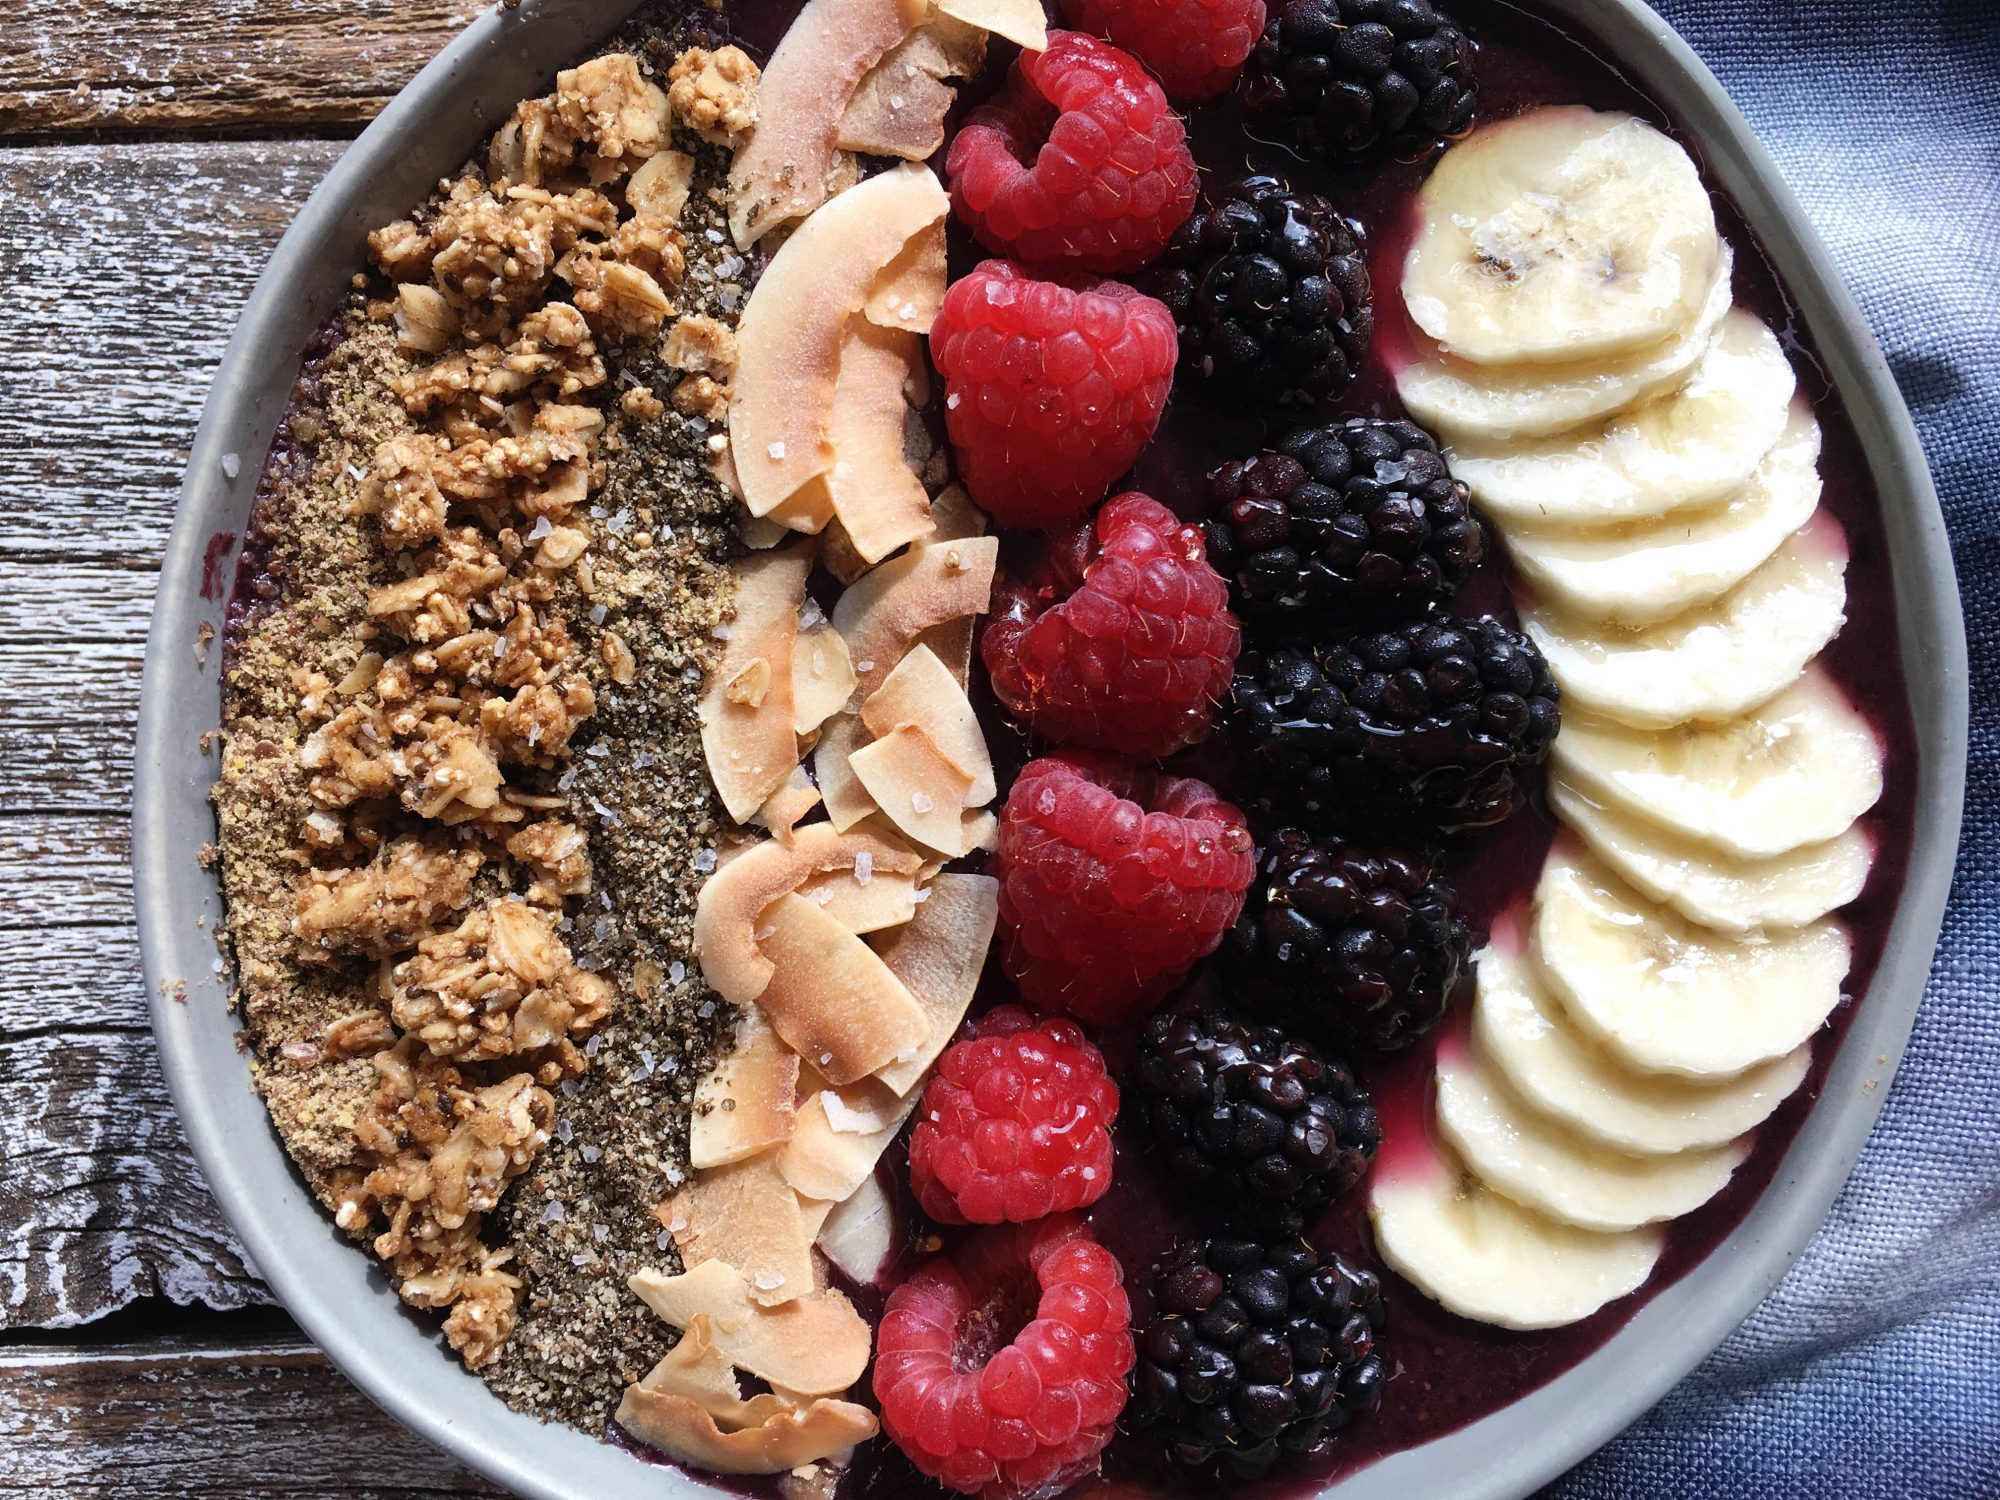 Blueberry Açaí Bowl